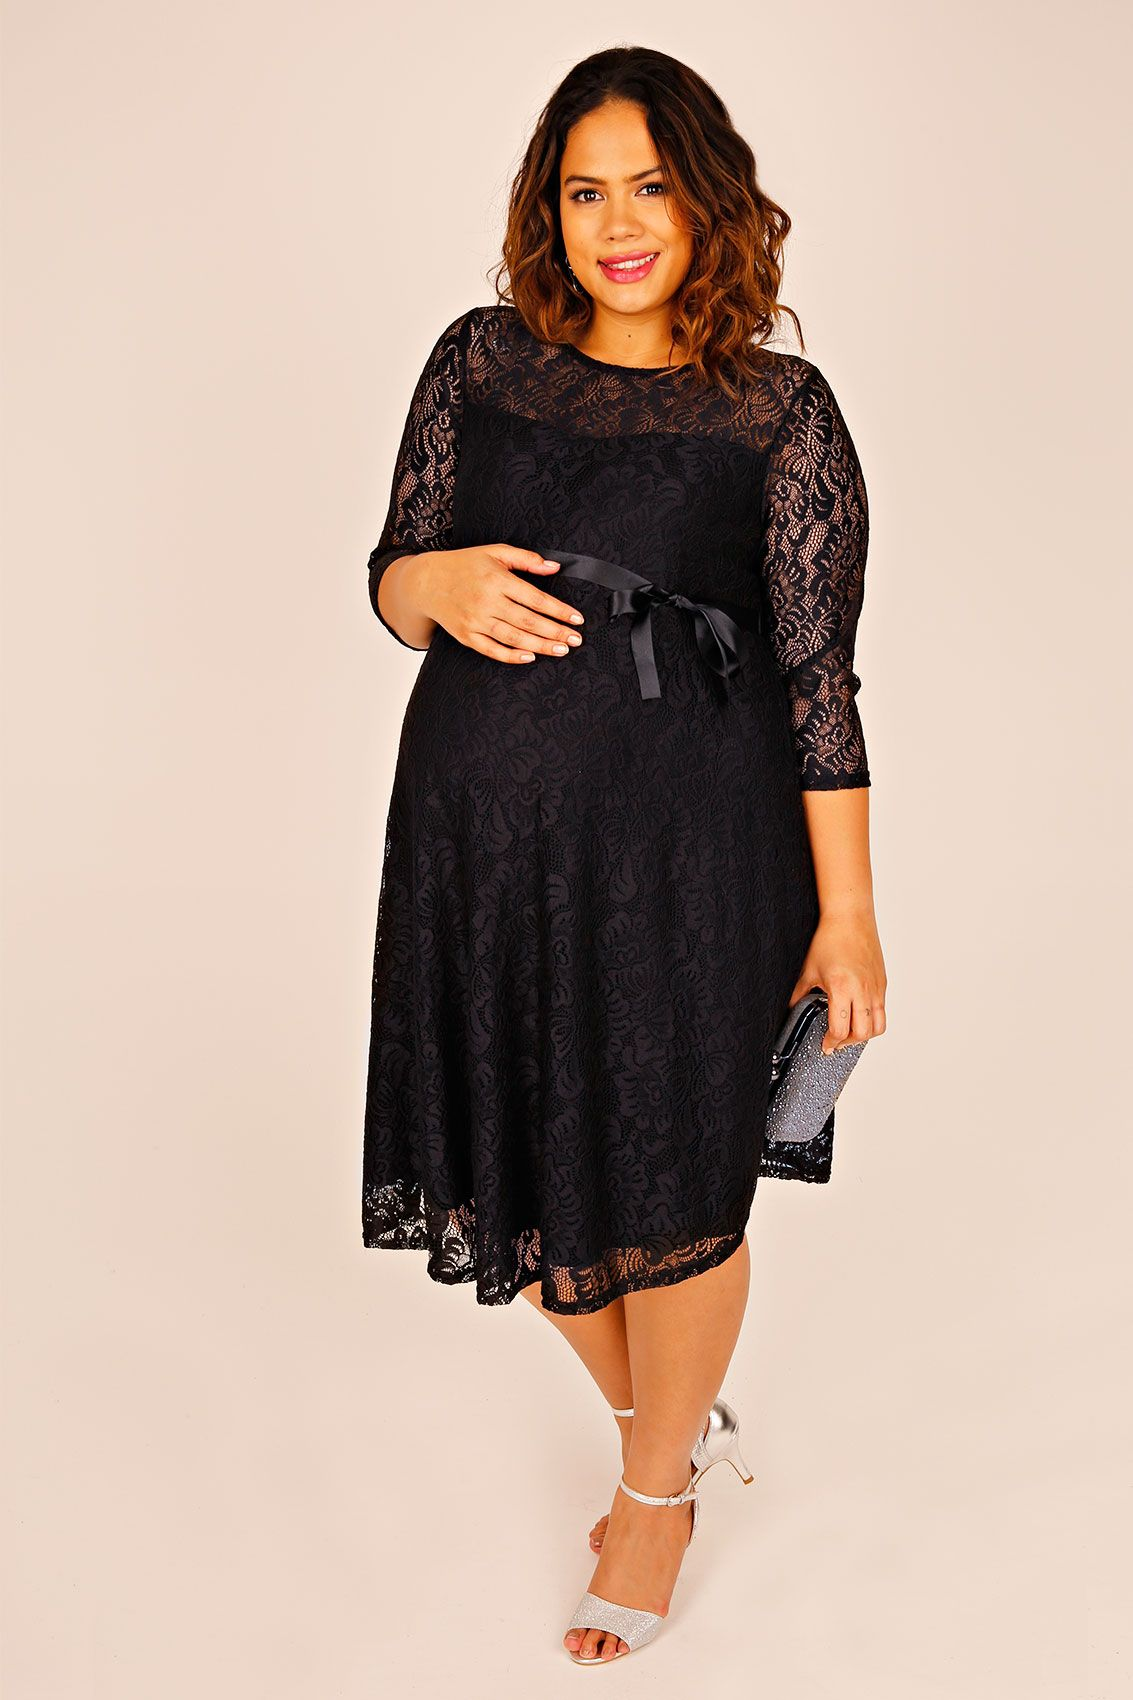 61c3f201f6007 BUMP IT UP MATERNITY Black Lace Sleeved Skater Dress With Ribbon Tie